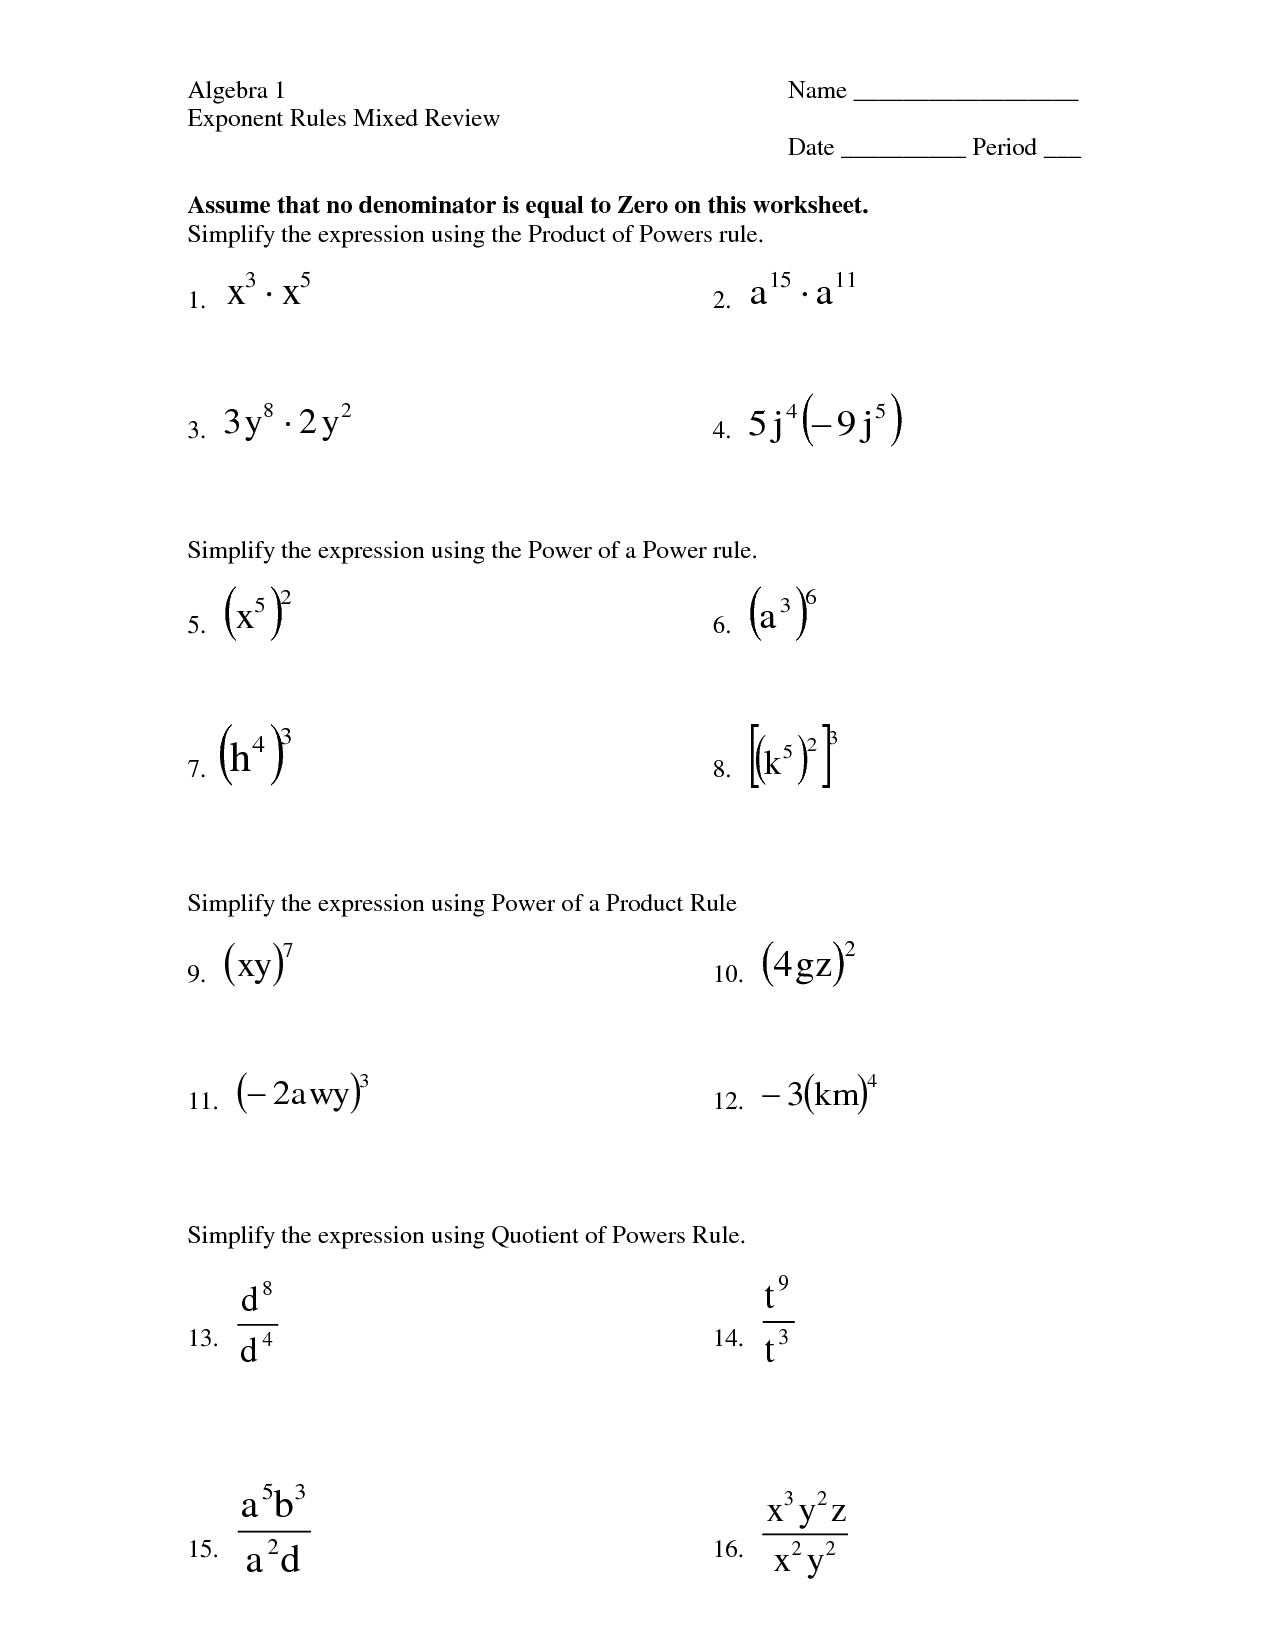 Worksheet Using Exponent Rules